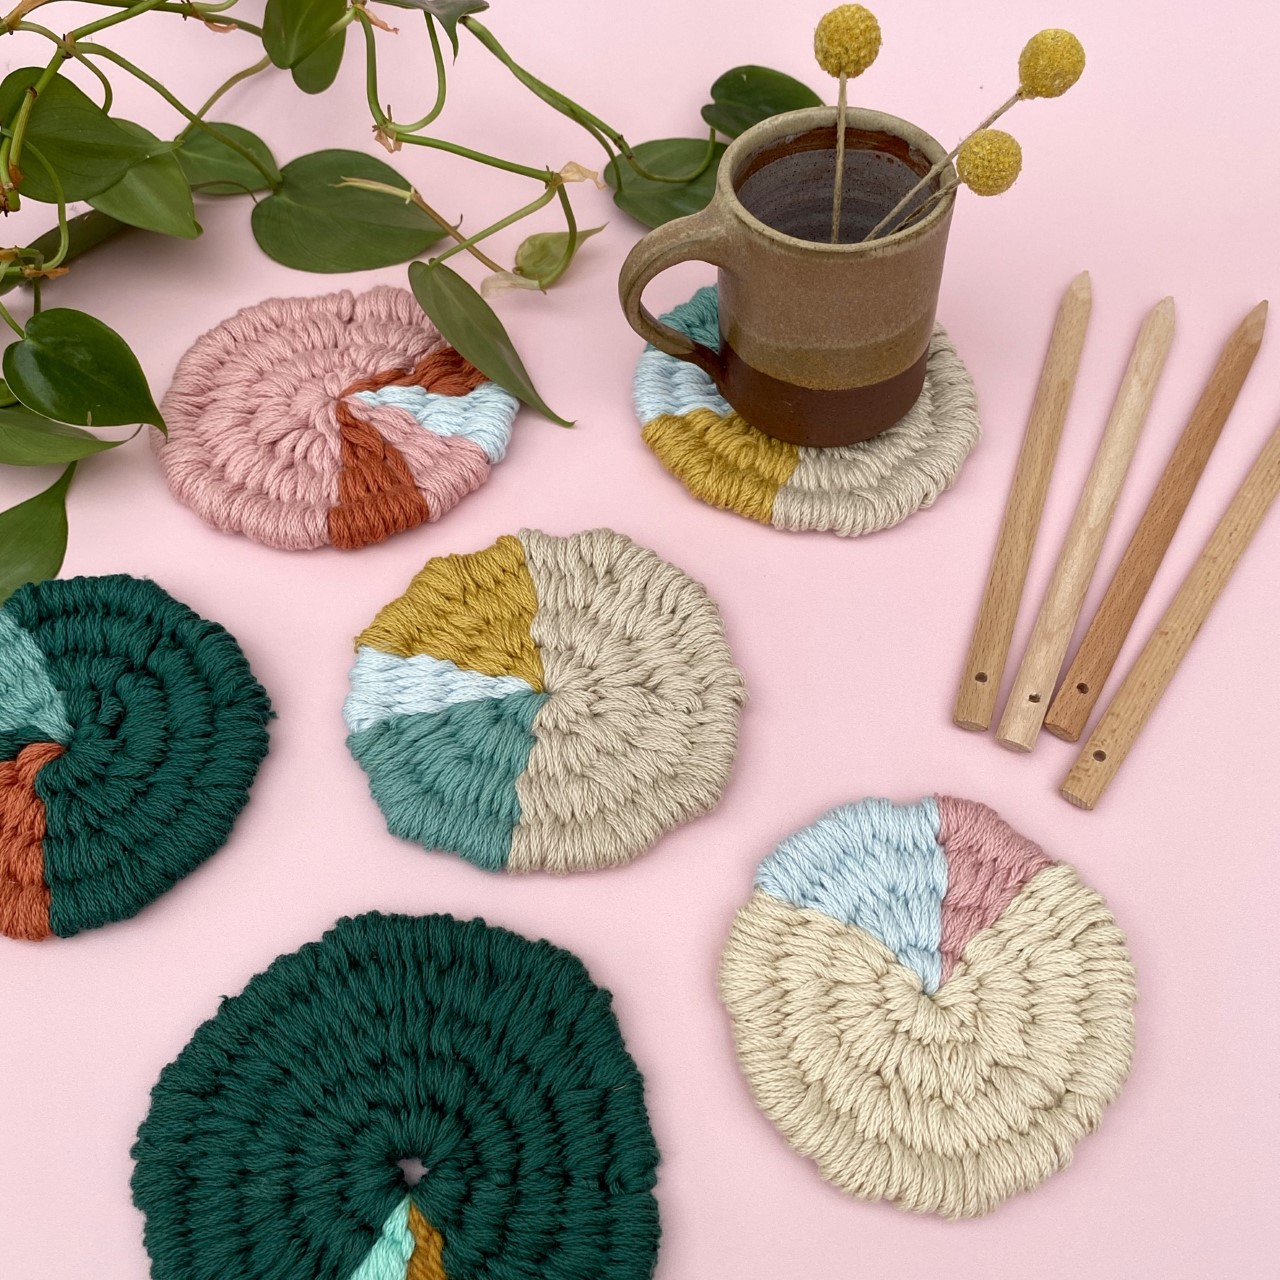 Craft Sunday: Woven Coasters with Le Petit Moose